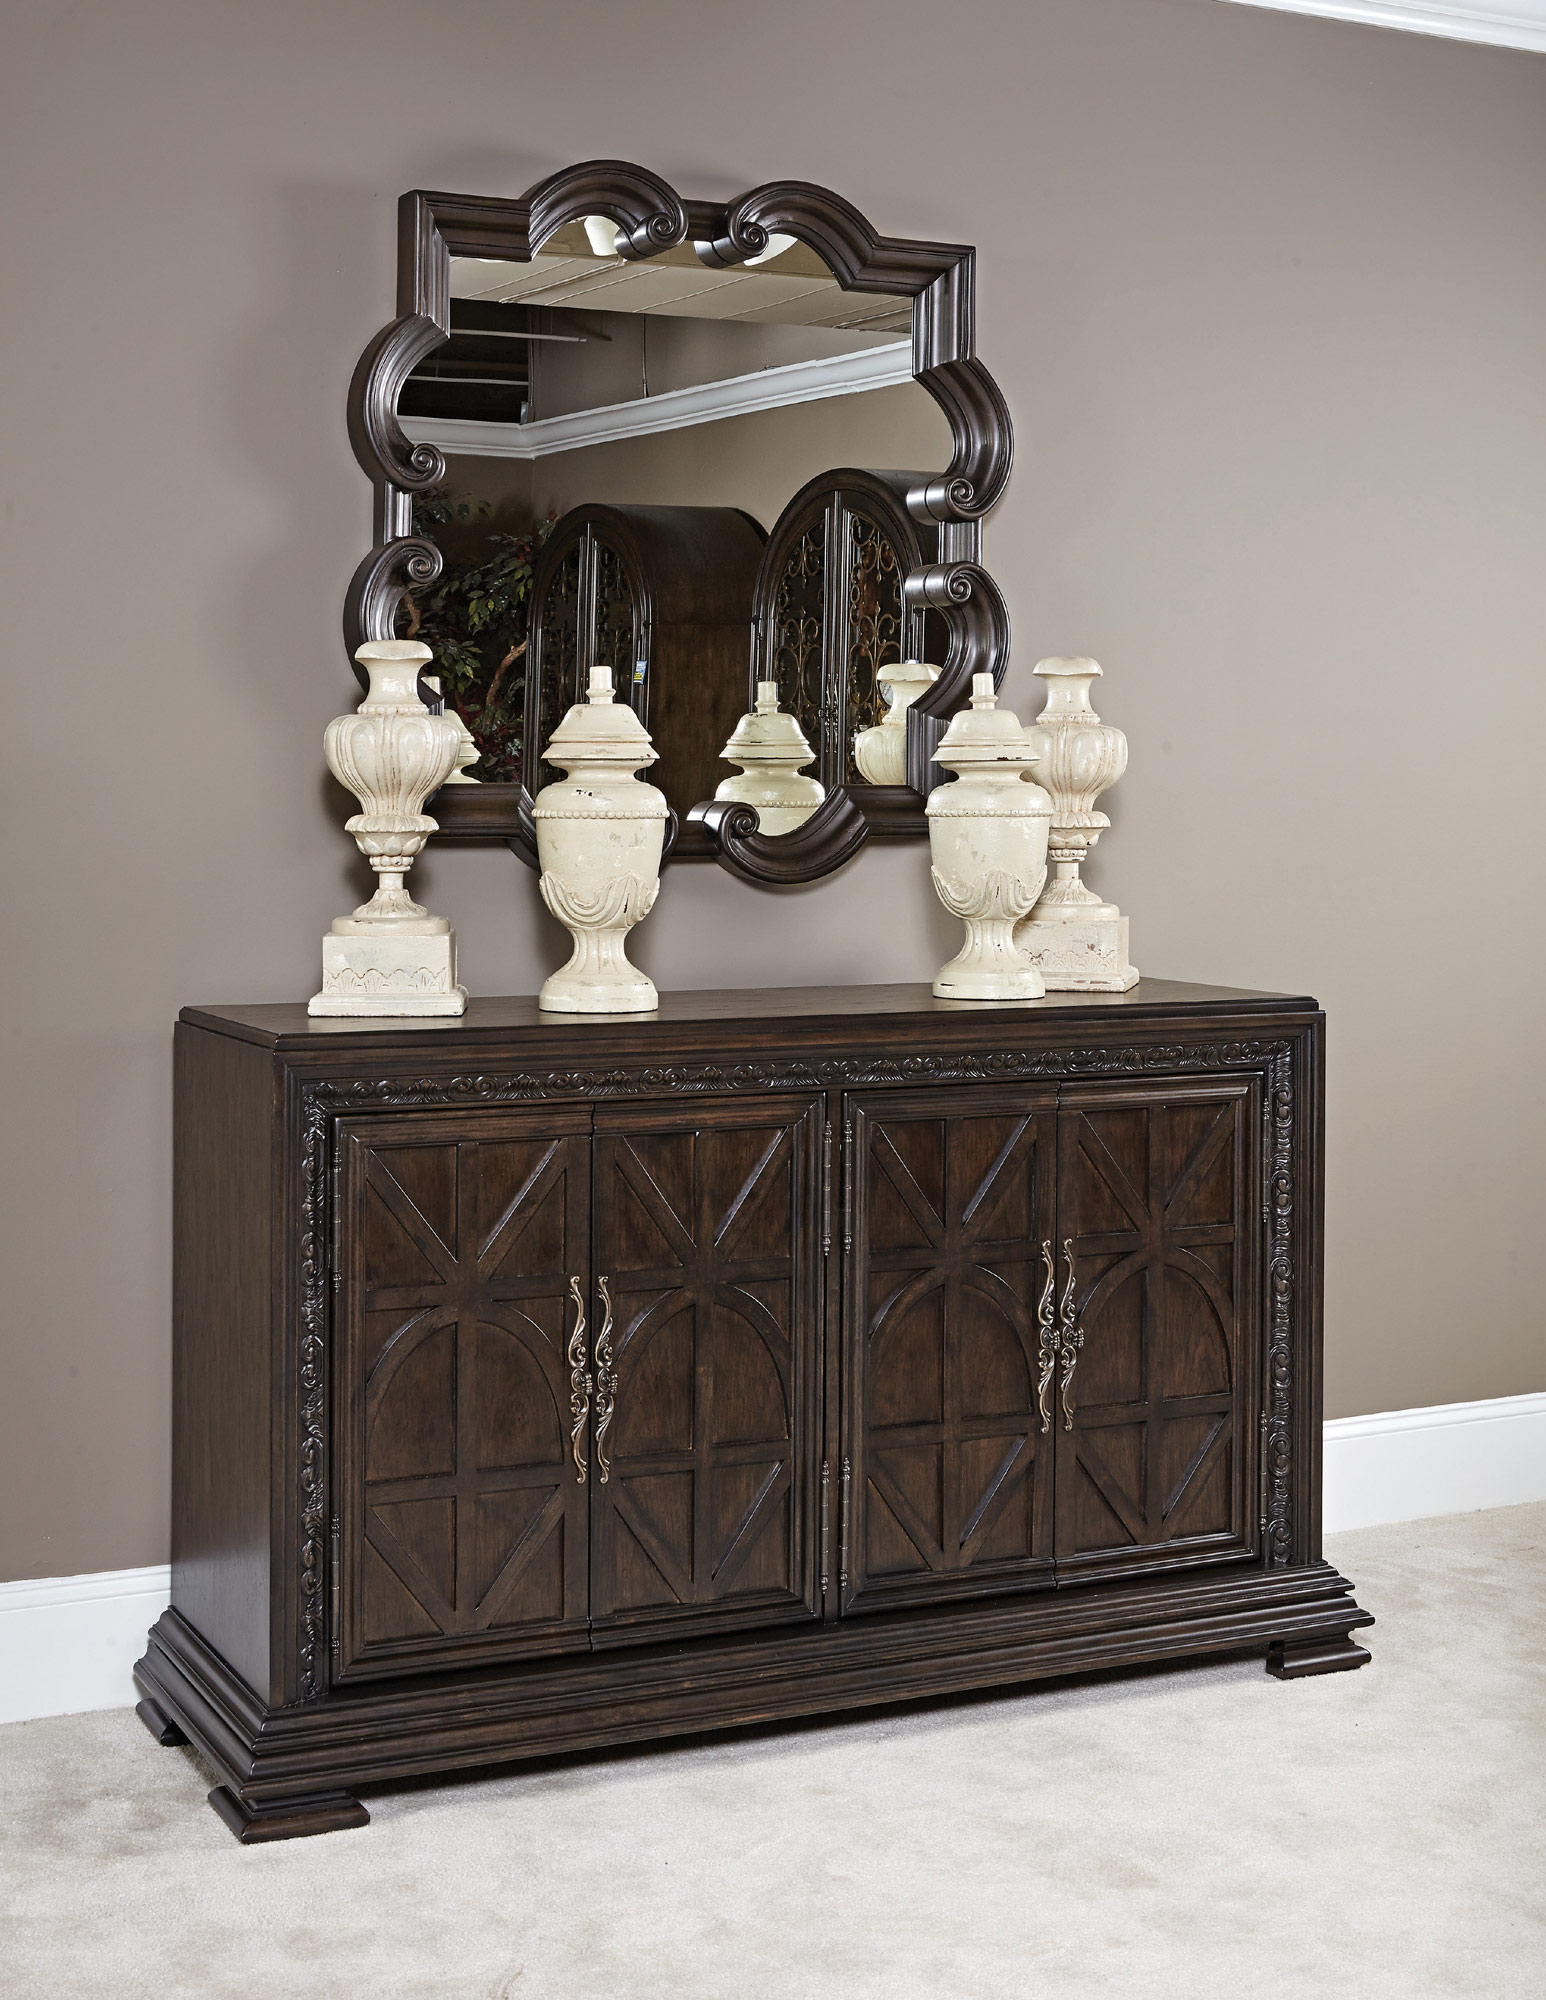 Casalone Casalone Buffet CLOSEOUT Dining Room